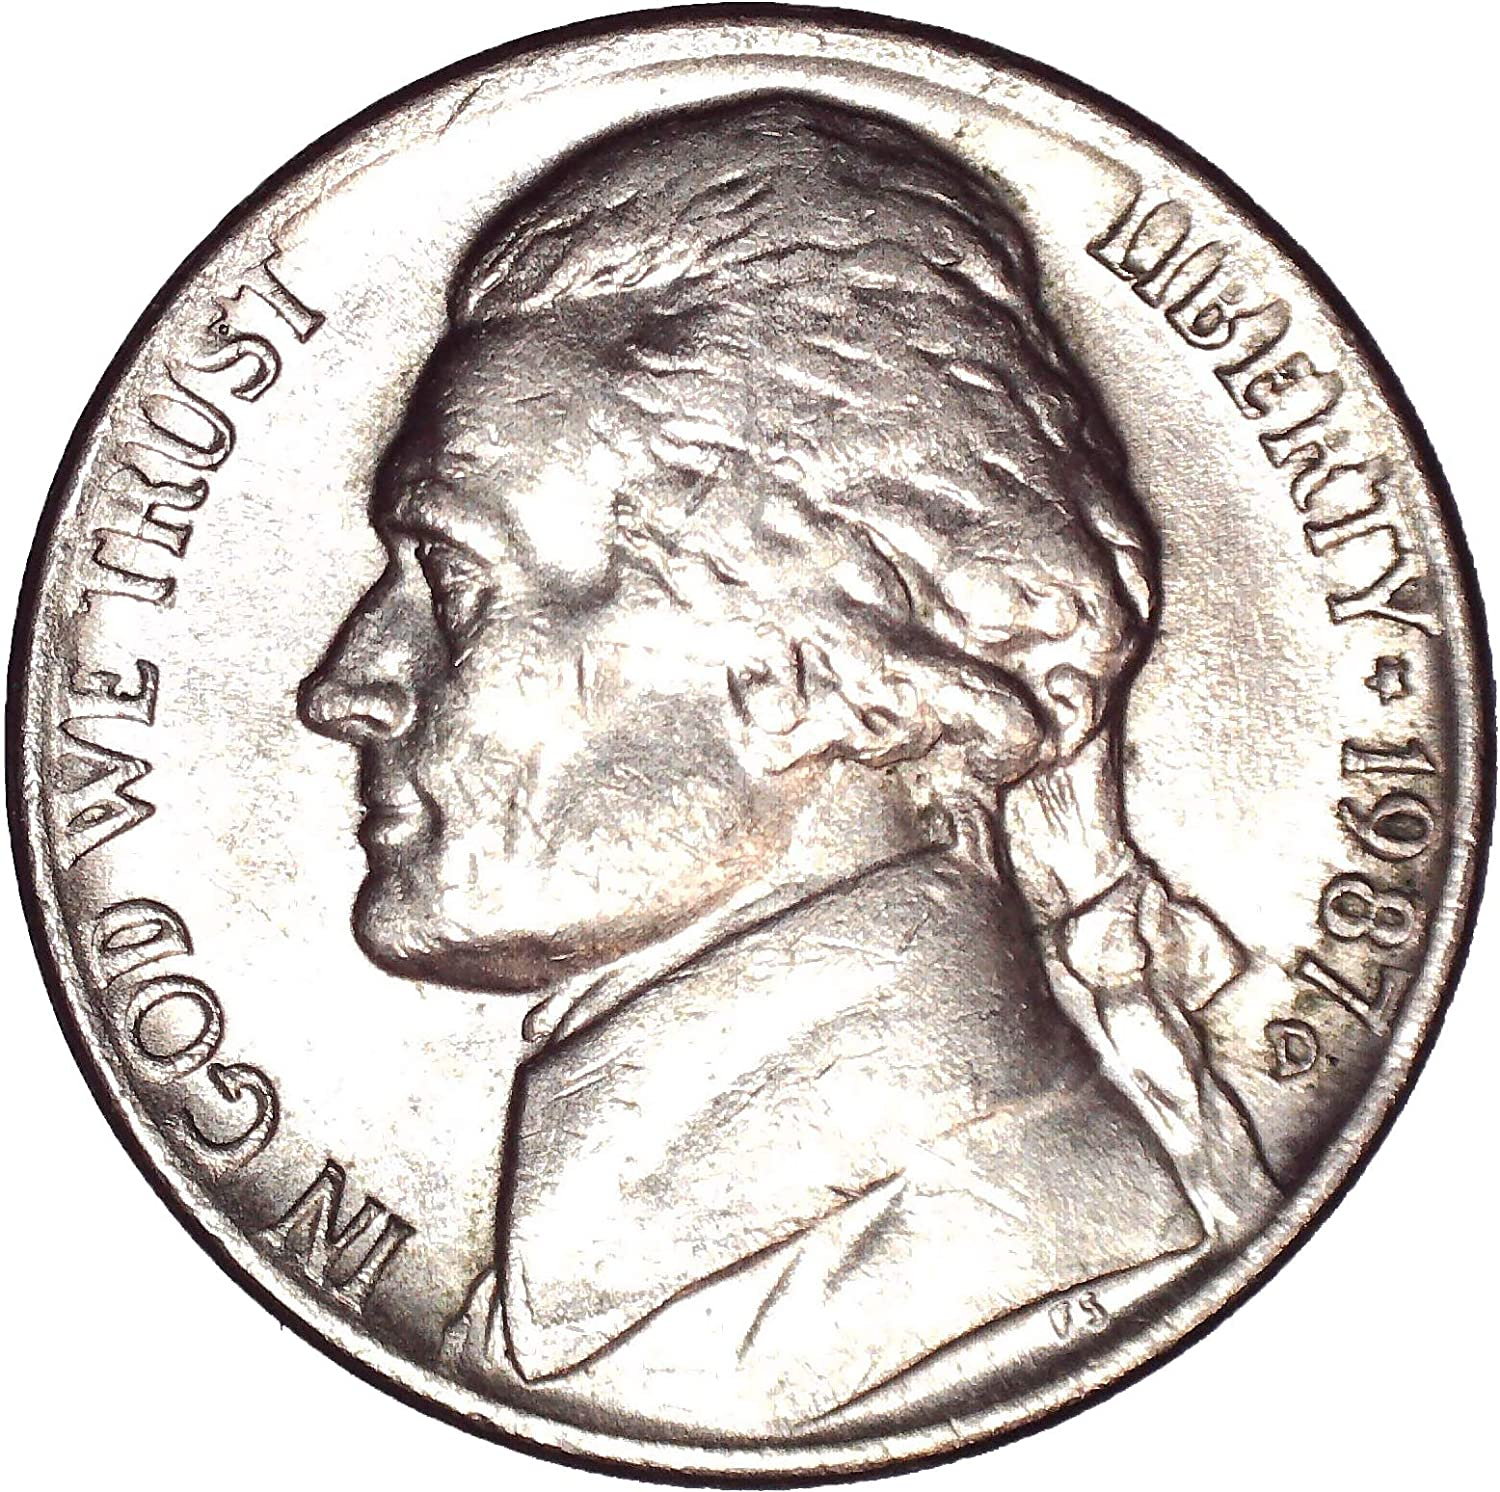 1987 Proof Jefferson Nickel Roll